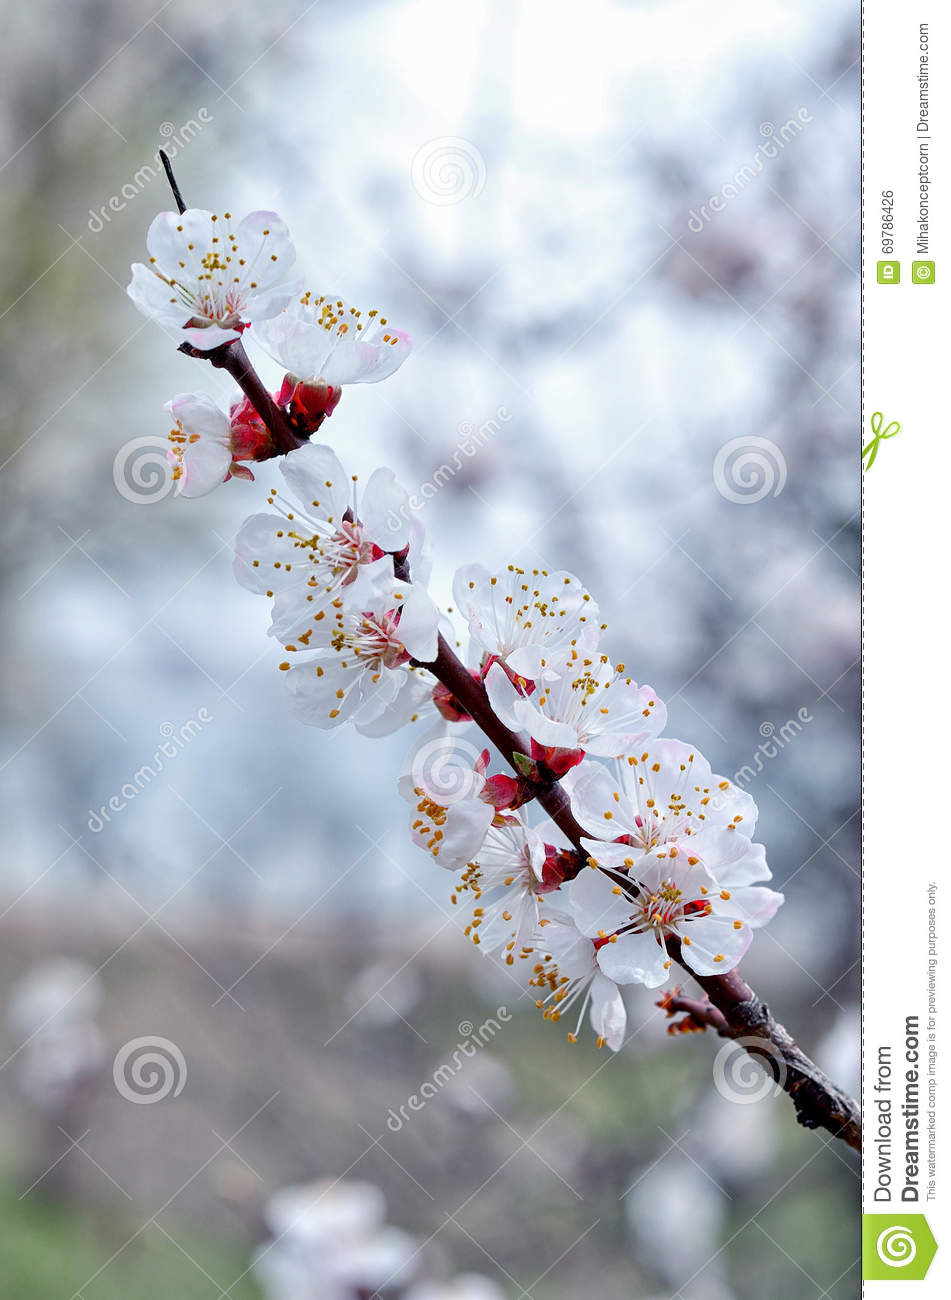 Apricot Tree Branch With White Flowers Stock Photo Image Of